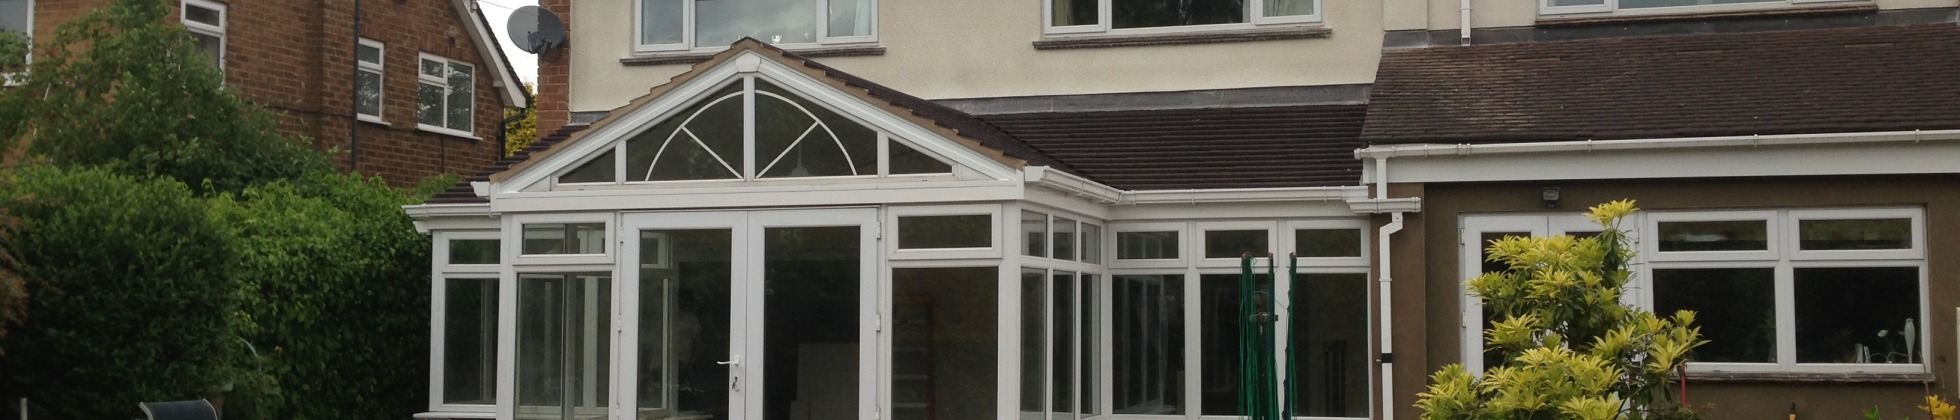 Conservatory renovation in Newtown Linford, Leicester